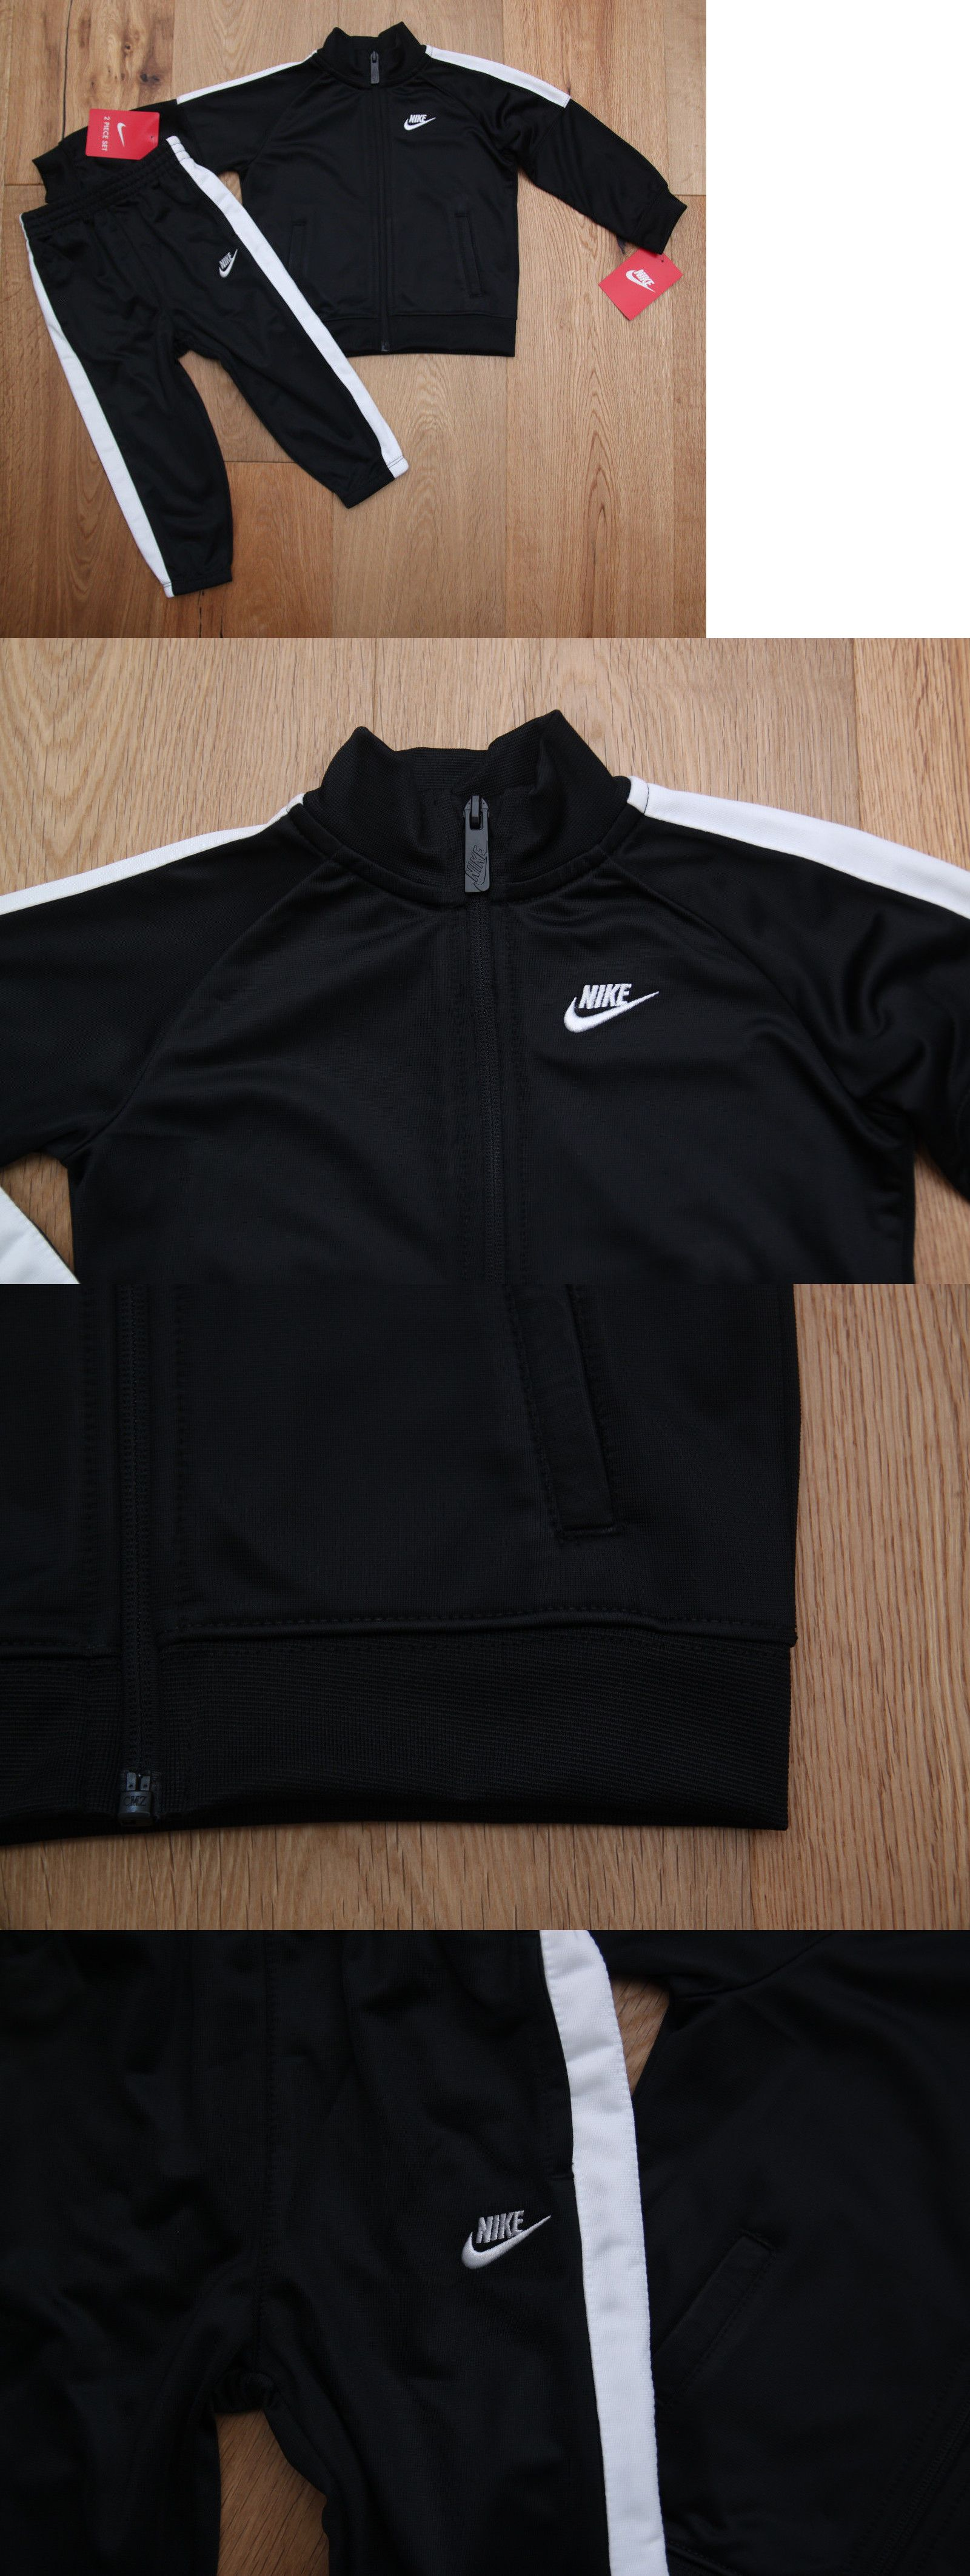 ee93e750a9 Outfits and Sets 147333: Nike Baby Boy 2 Piece Jogging Set ...